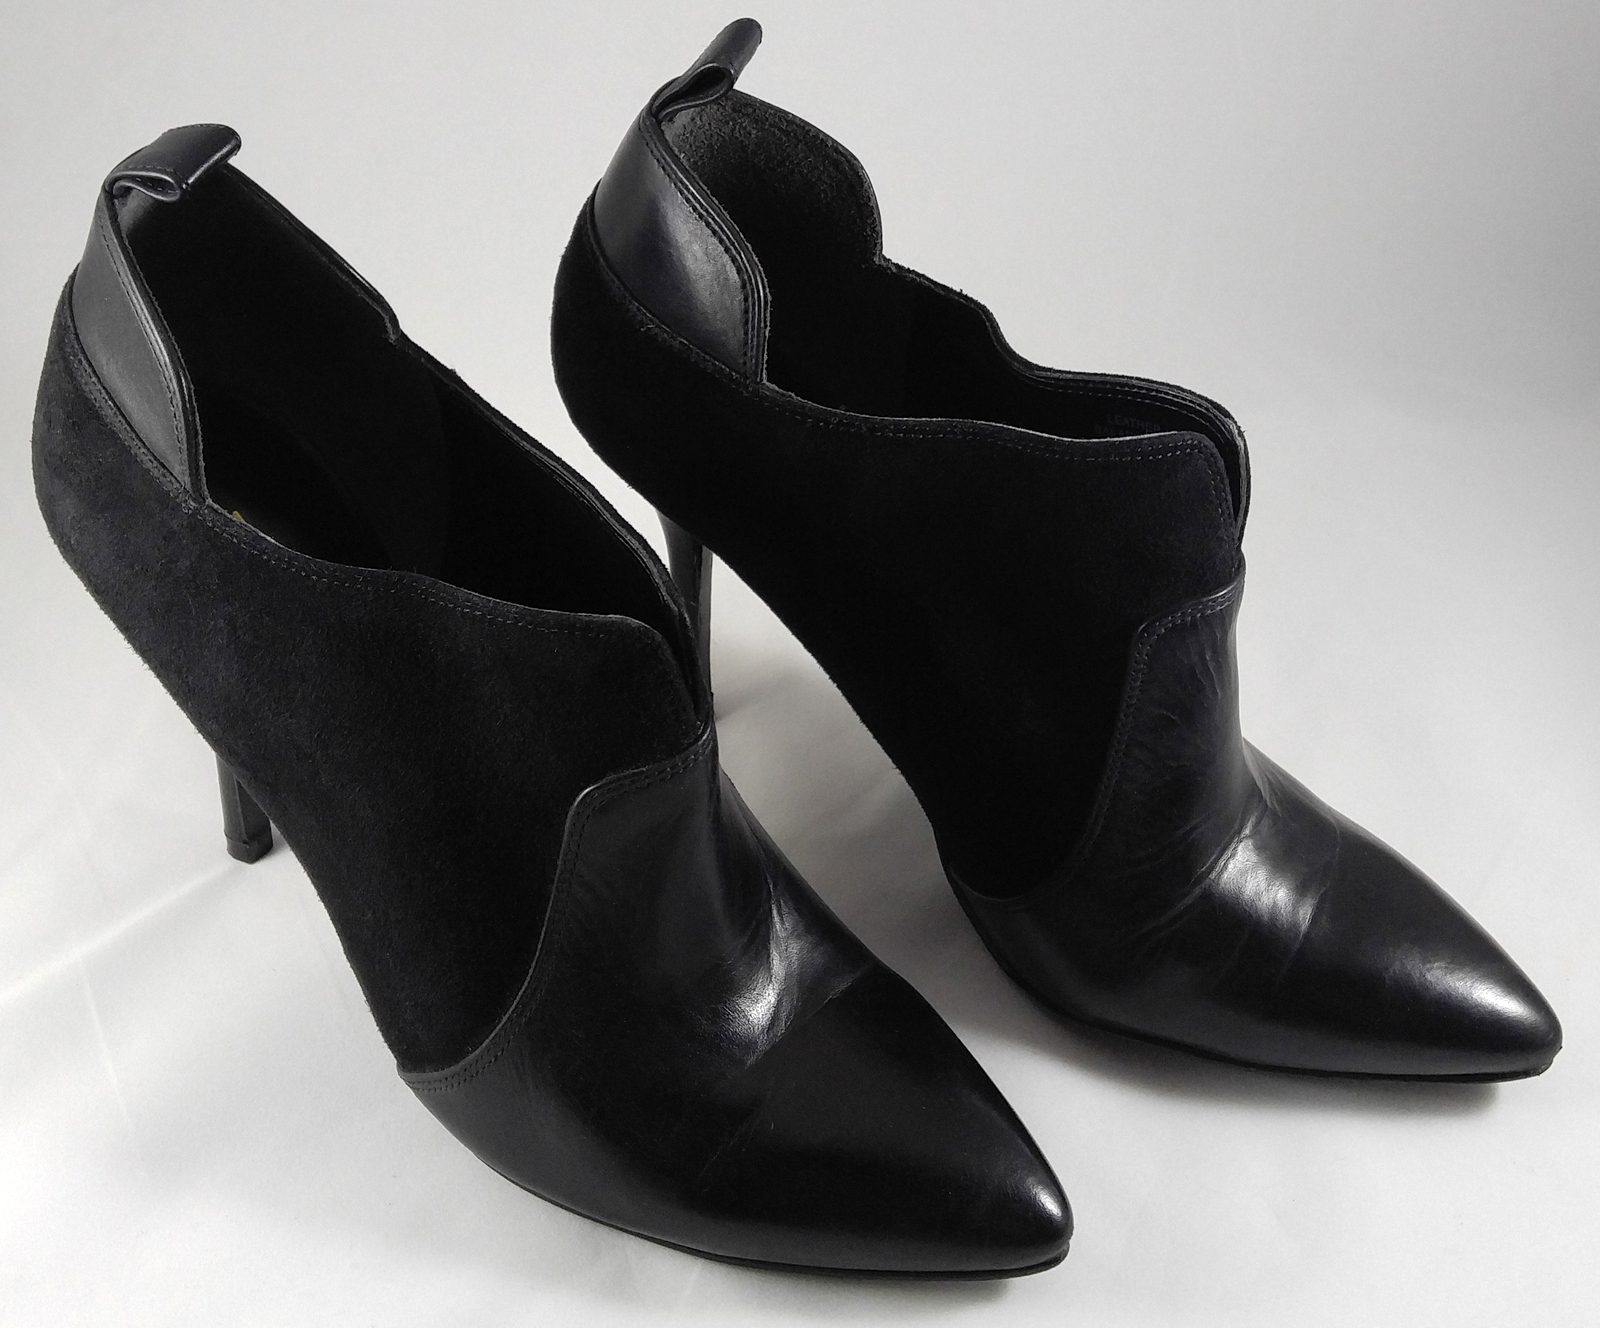 Enzo Angiolini Prixia Black Leather Suede Heels Shoes Ankle Boots Booties Size 8